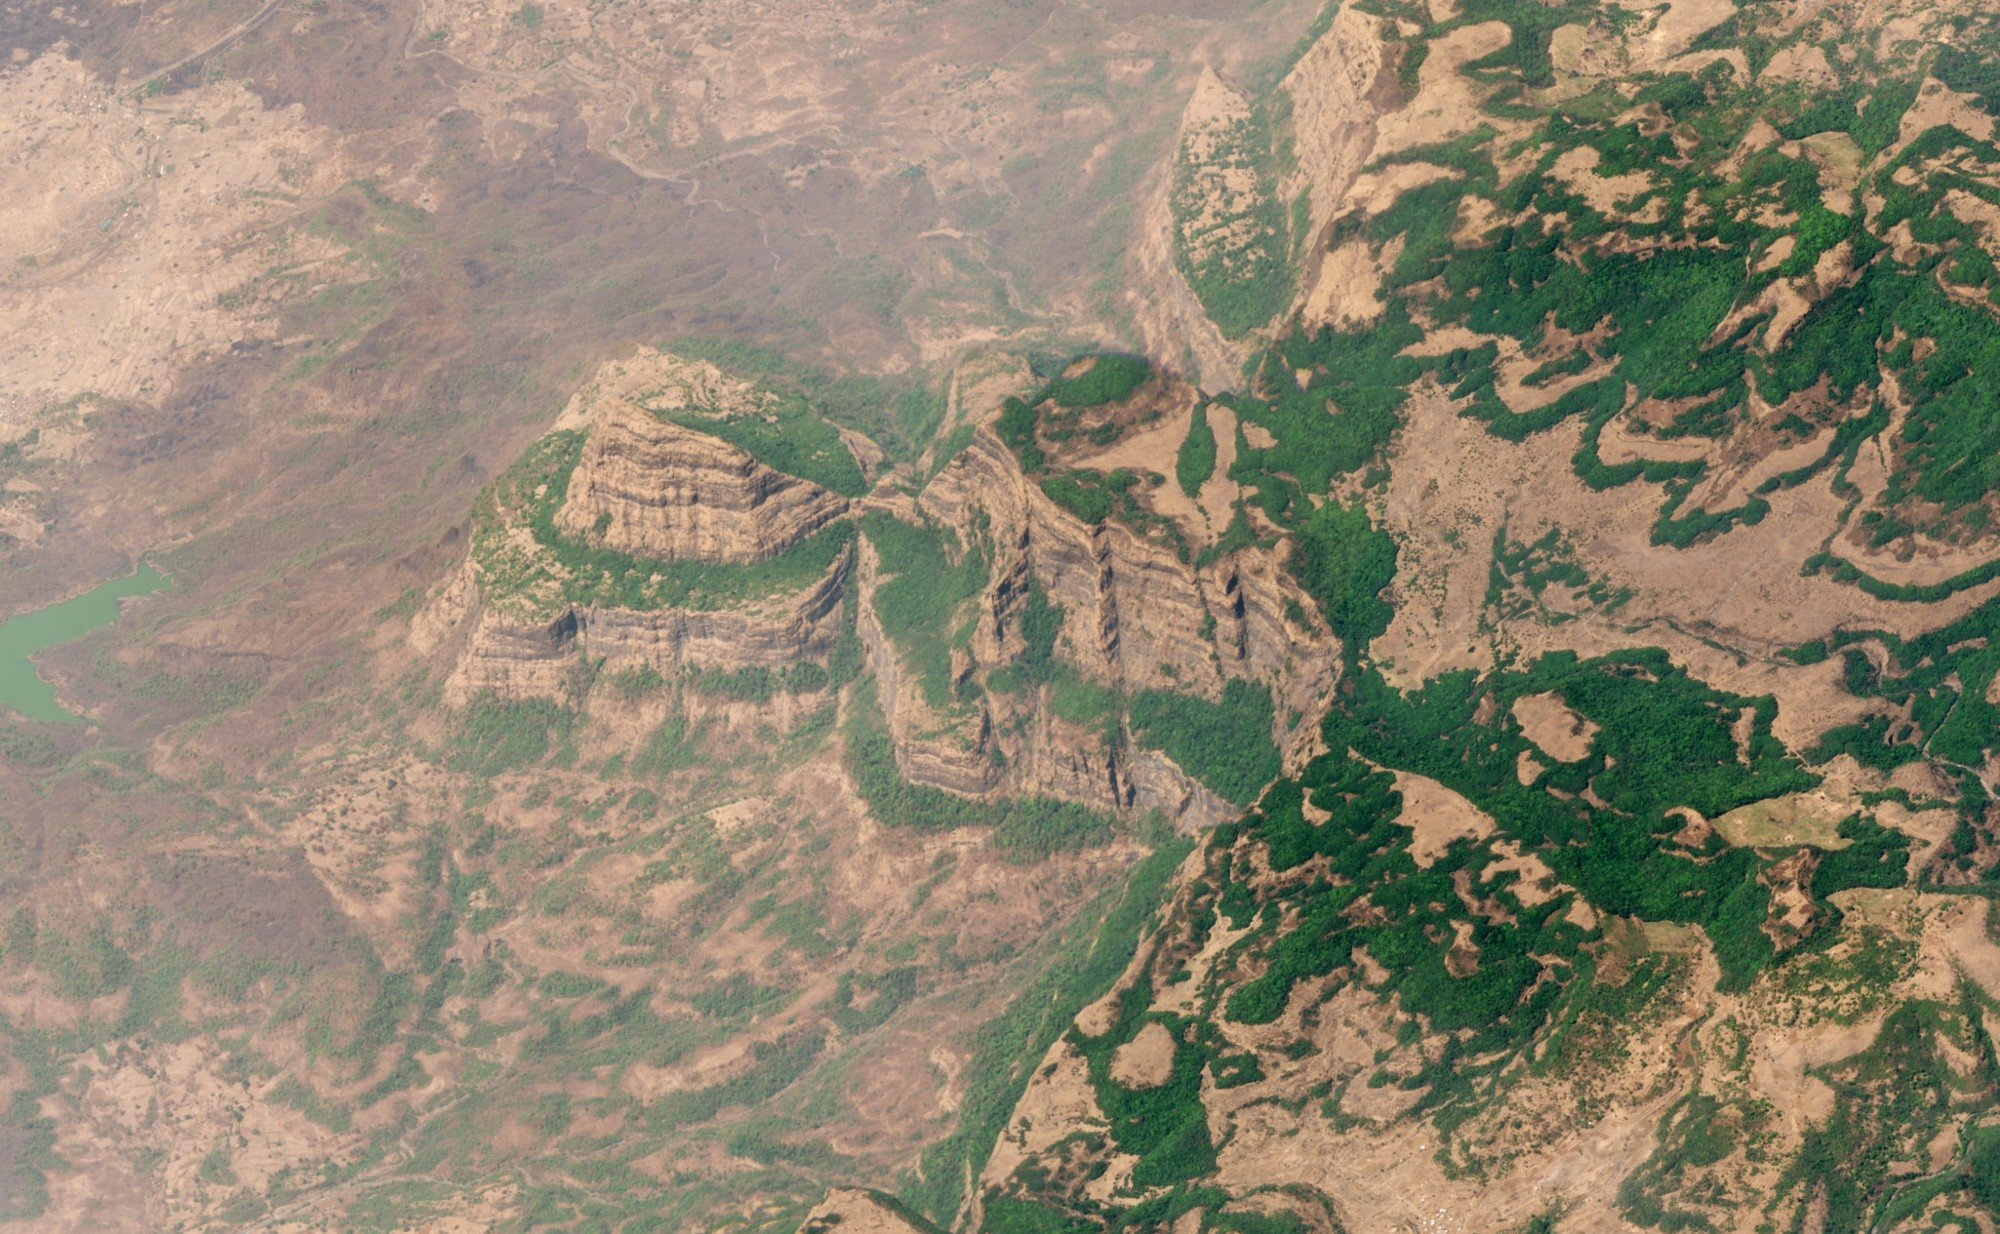 Deccan Traps, India. March 22, 2018. Image ©2018 Planet Labs, Inc. cc-by-sa4.0.